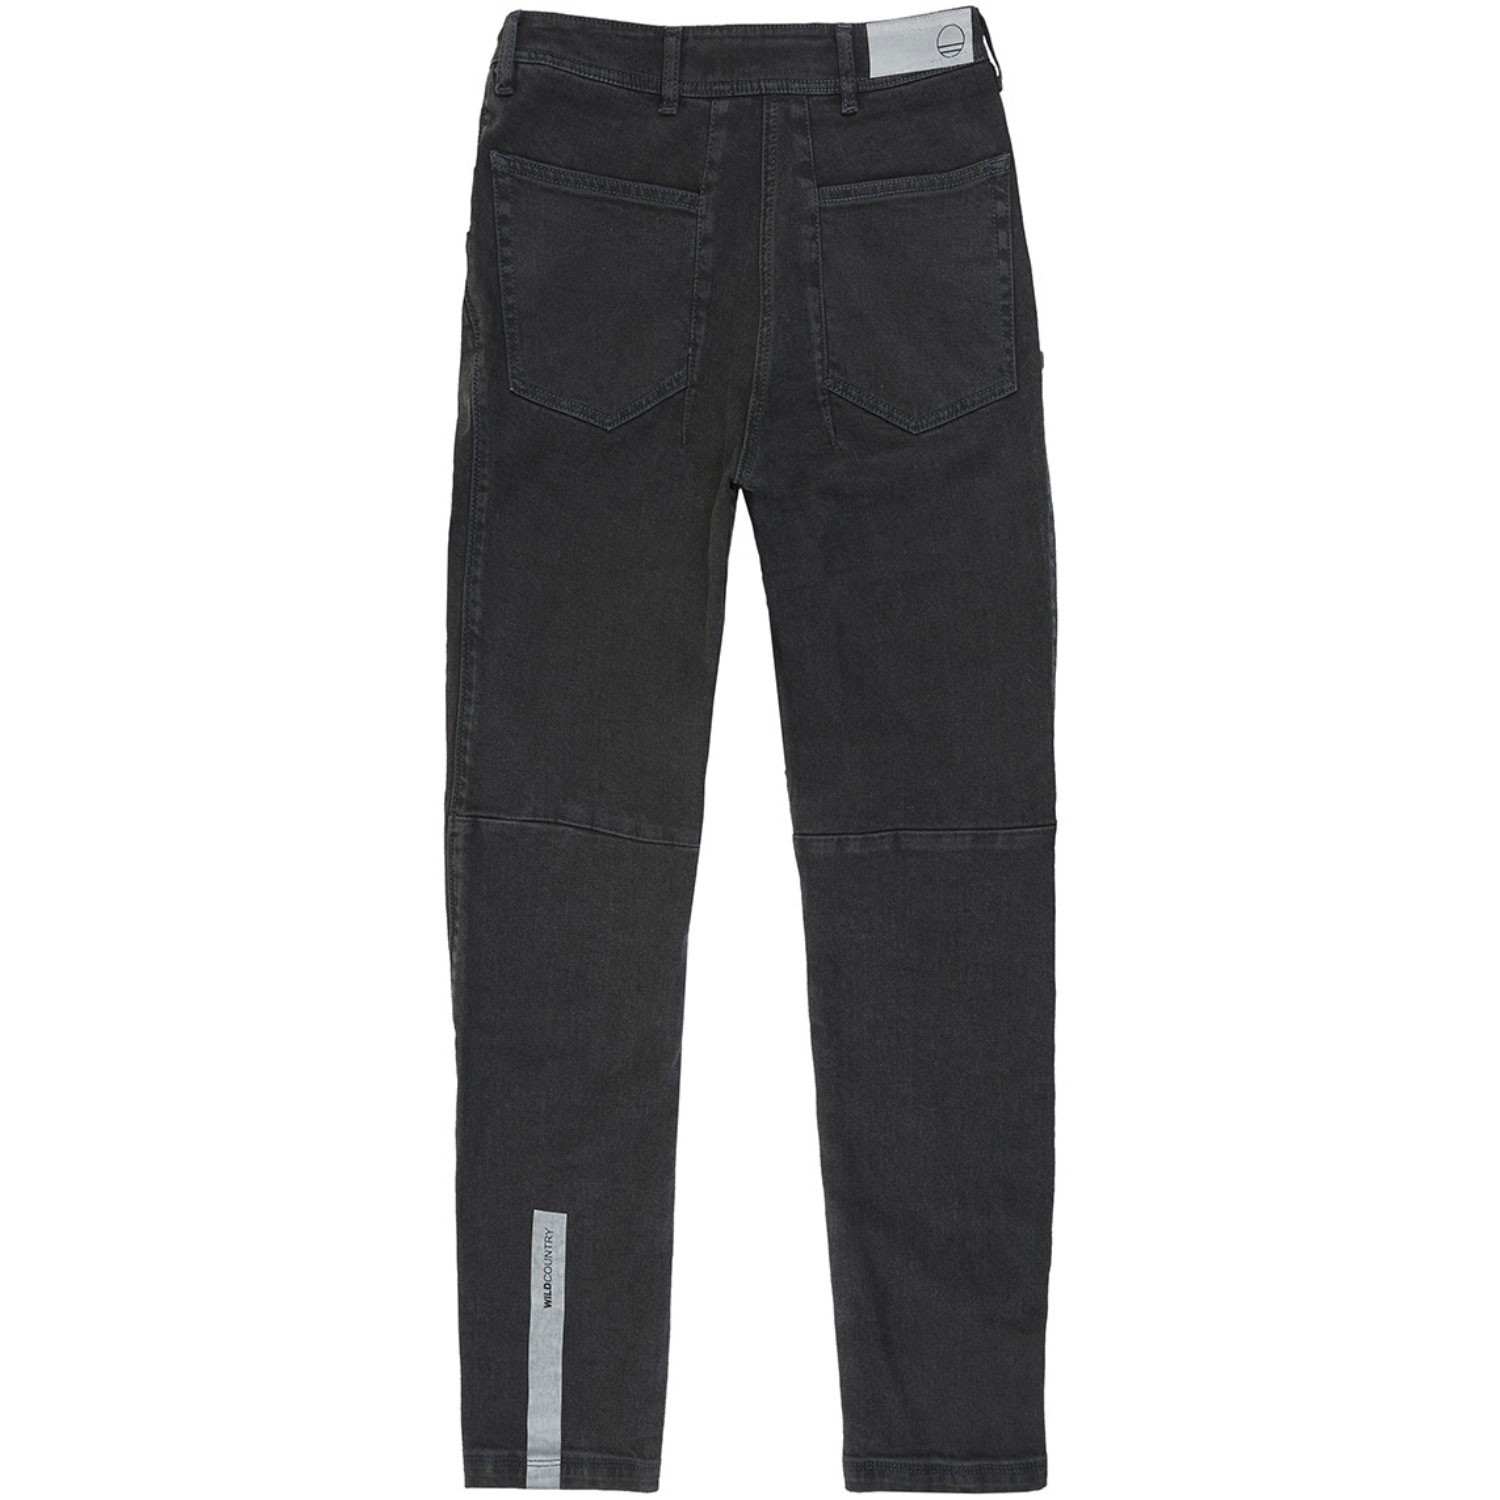 Wild Country Stanage Women's Jeans - Black Out